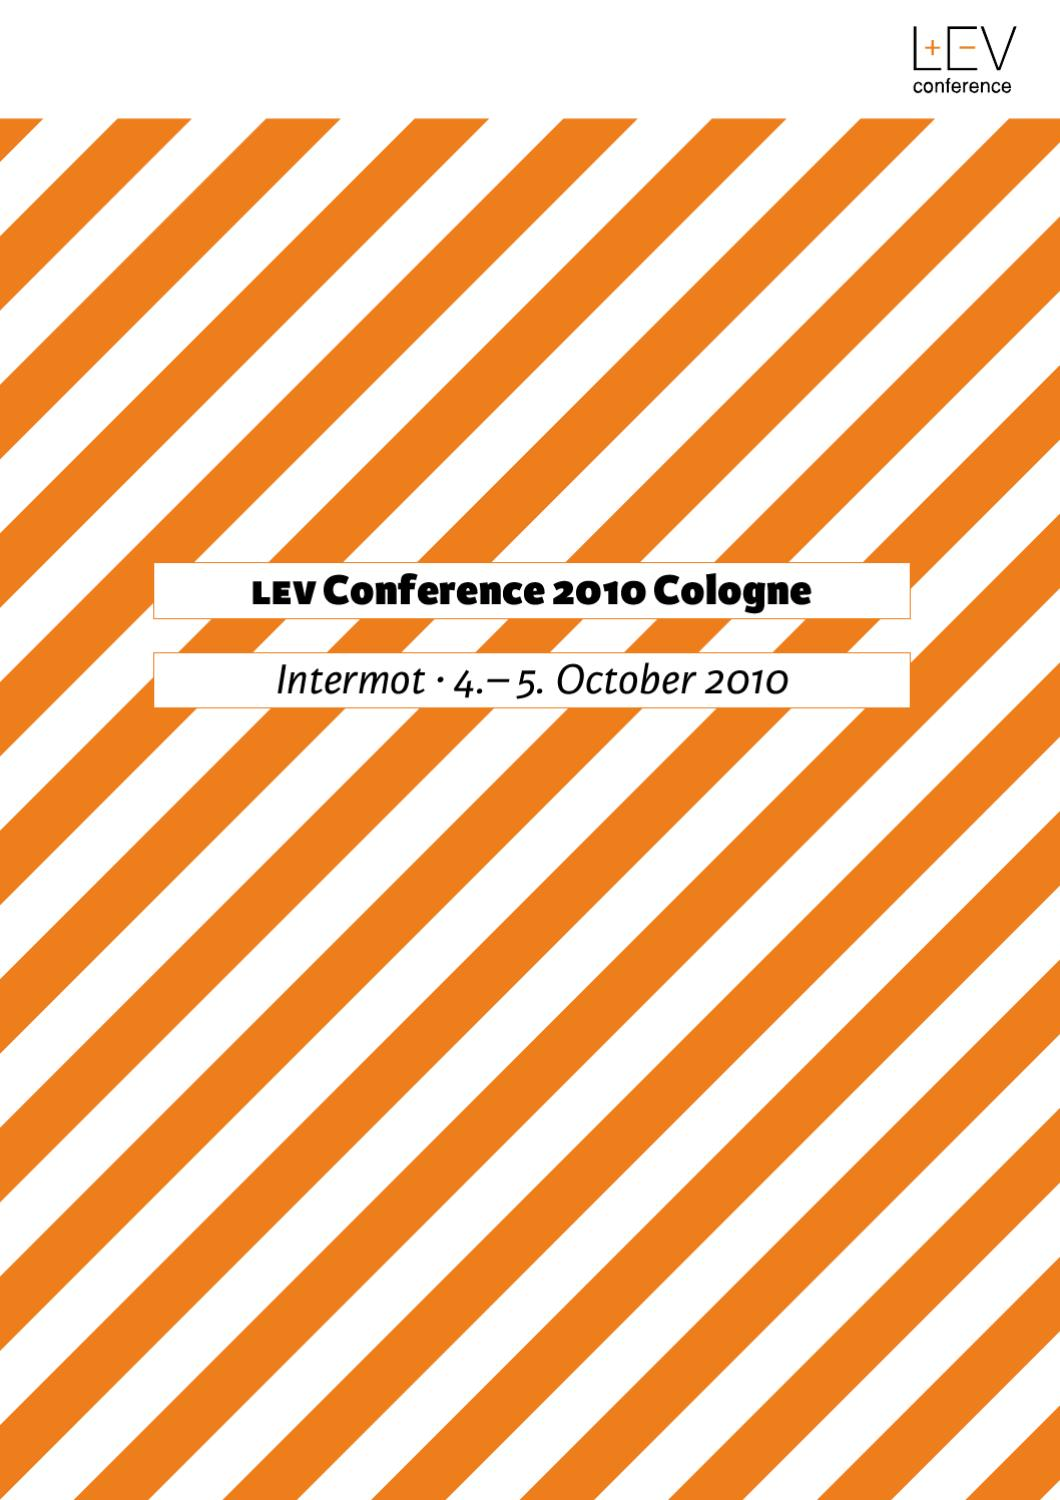 lev conference reader by extraenergy issuu